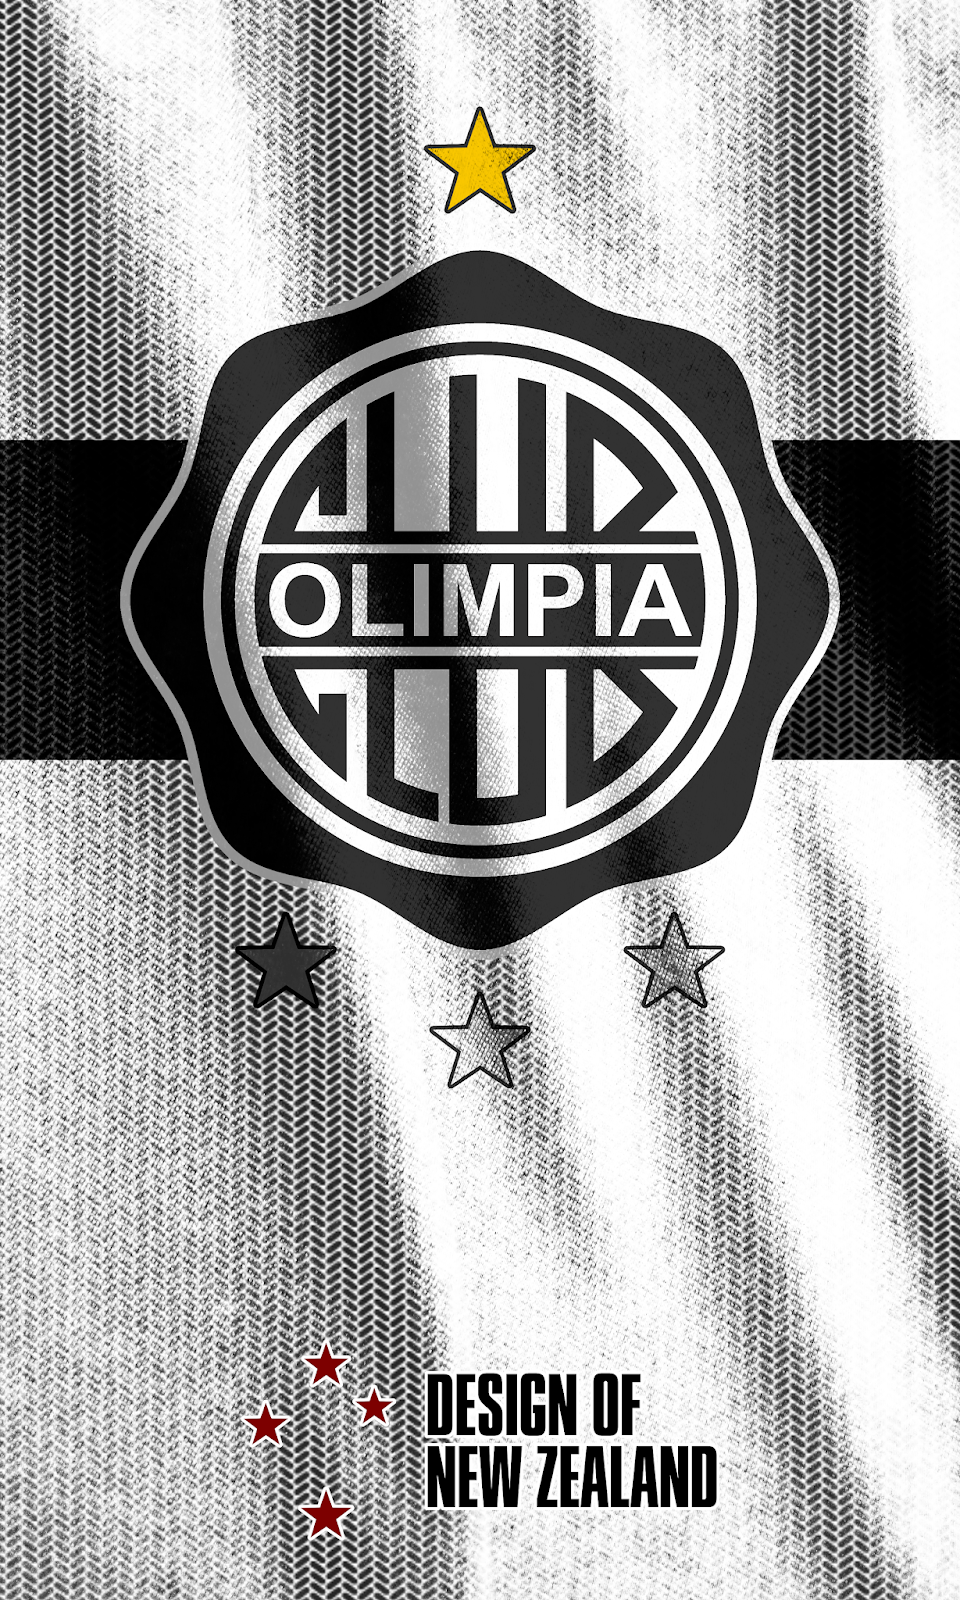 Wallpaper Club Olimpia Logos E Uniformes Pinterest Soccer